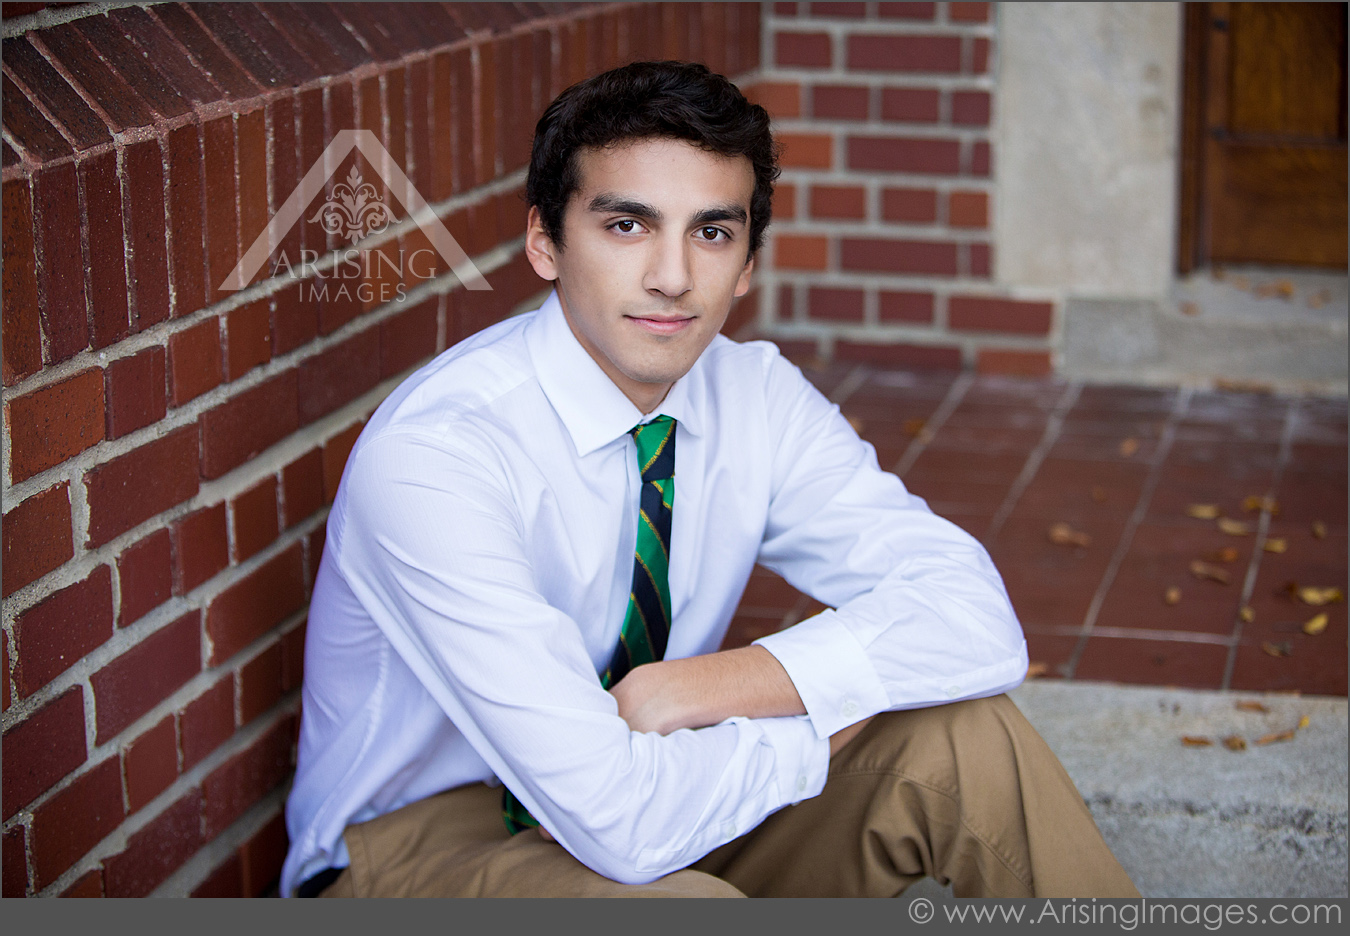 Cranbrook Senior Photography